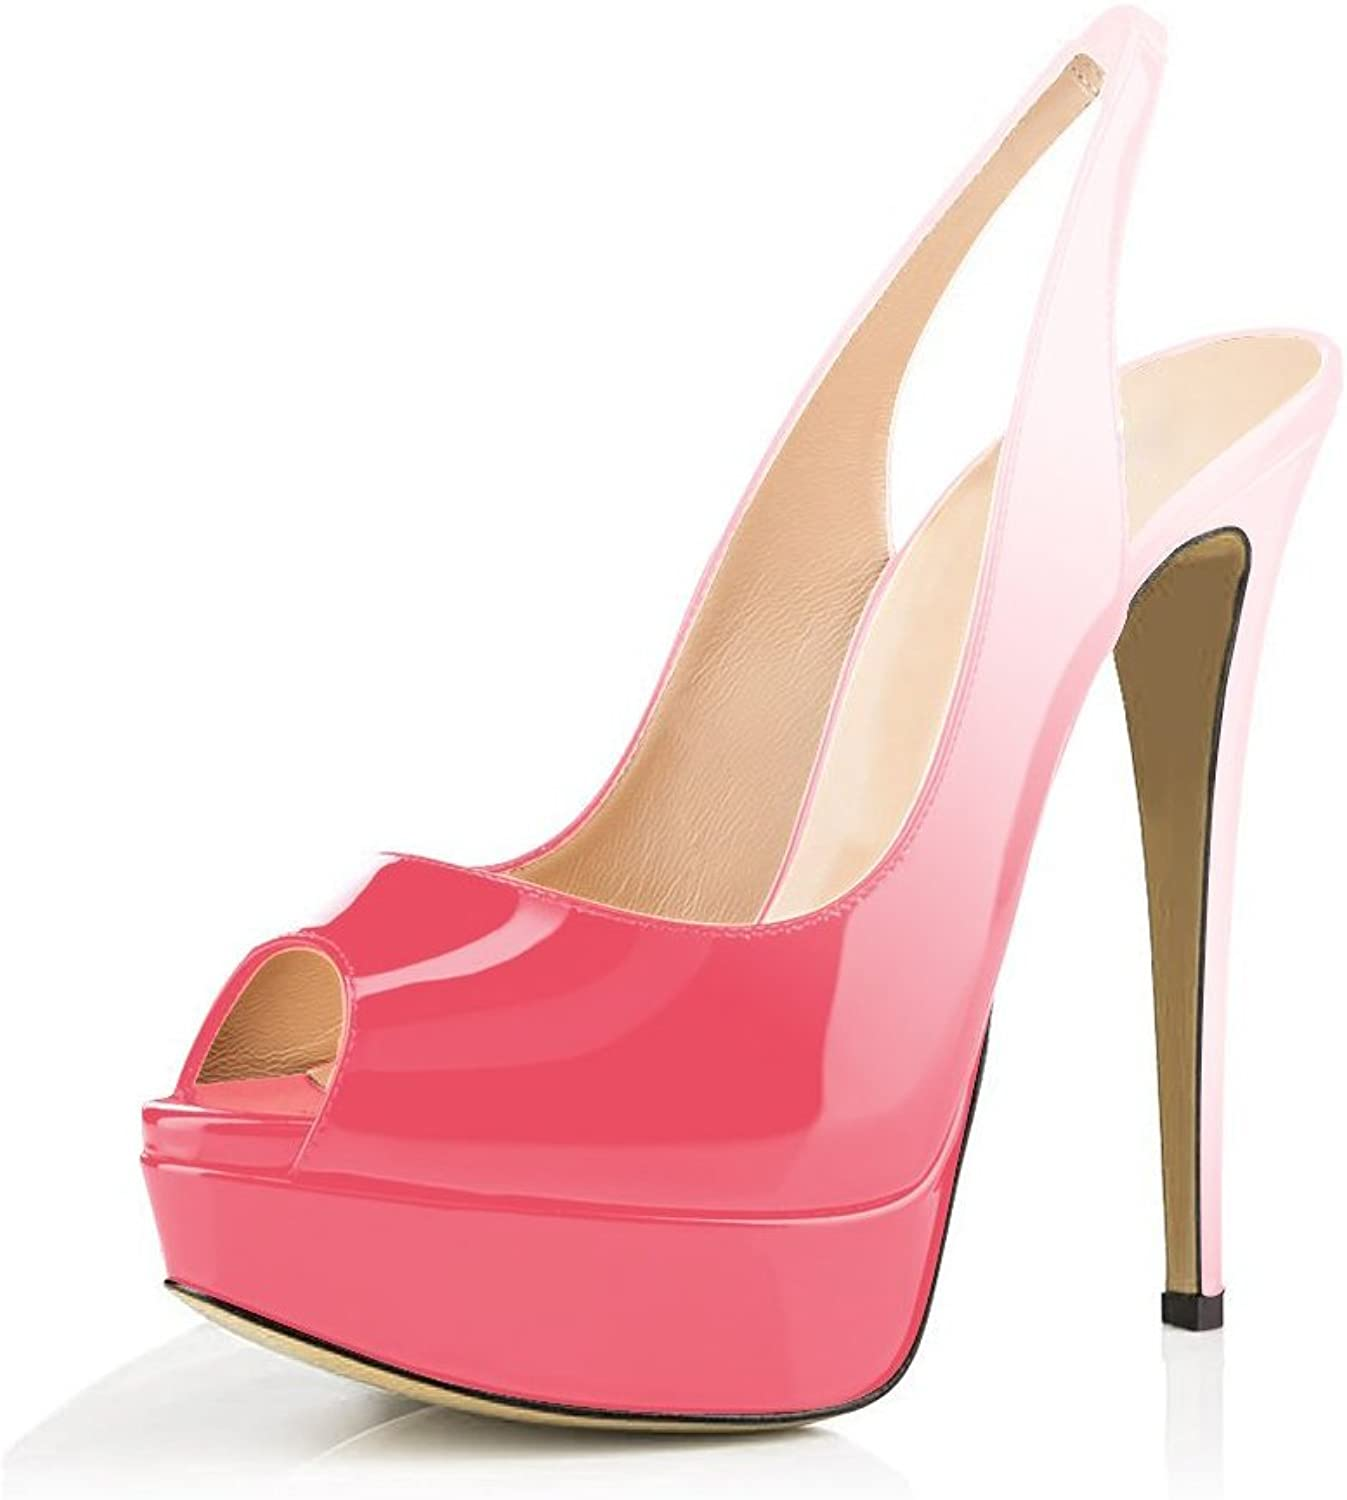 Cdvintu Lady Peep Toe Slingbacks 150mm Cover Stilettos 50mm Platform High Heels Patent Leather Pumps for Wedding